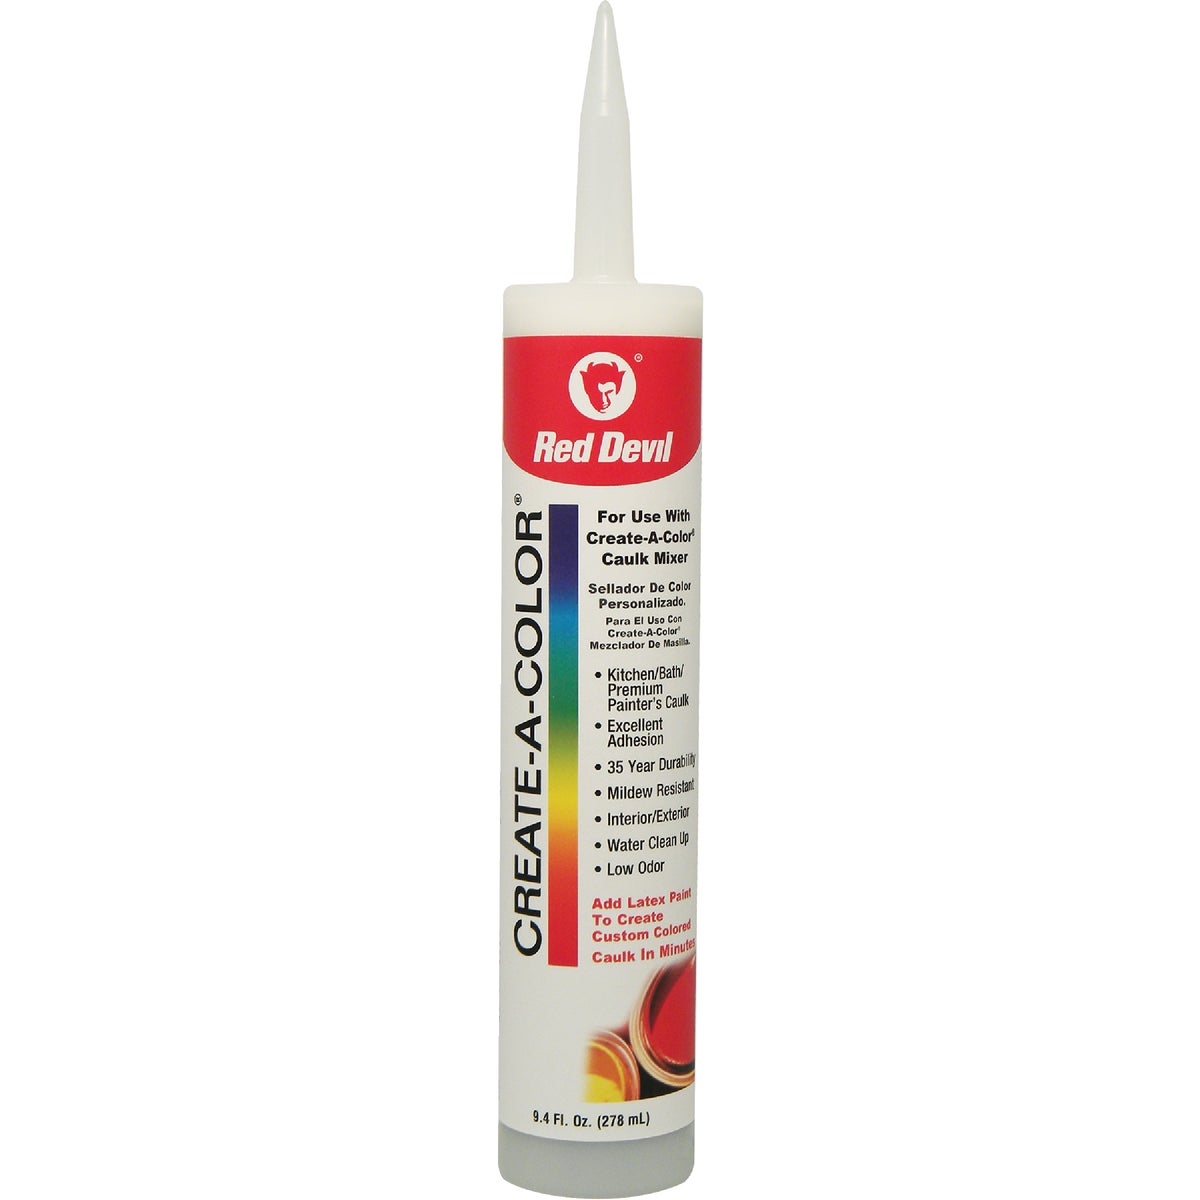 CREATE-A-COLOR CAULK